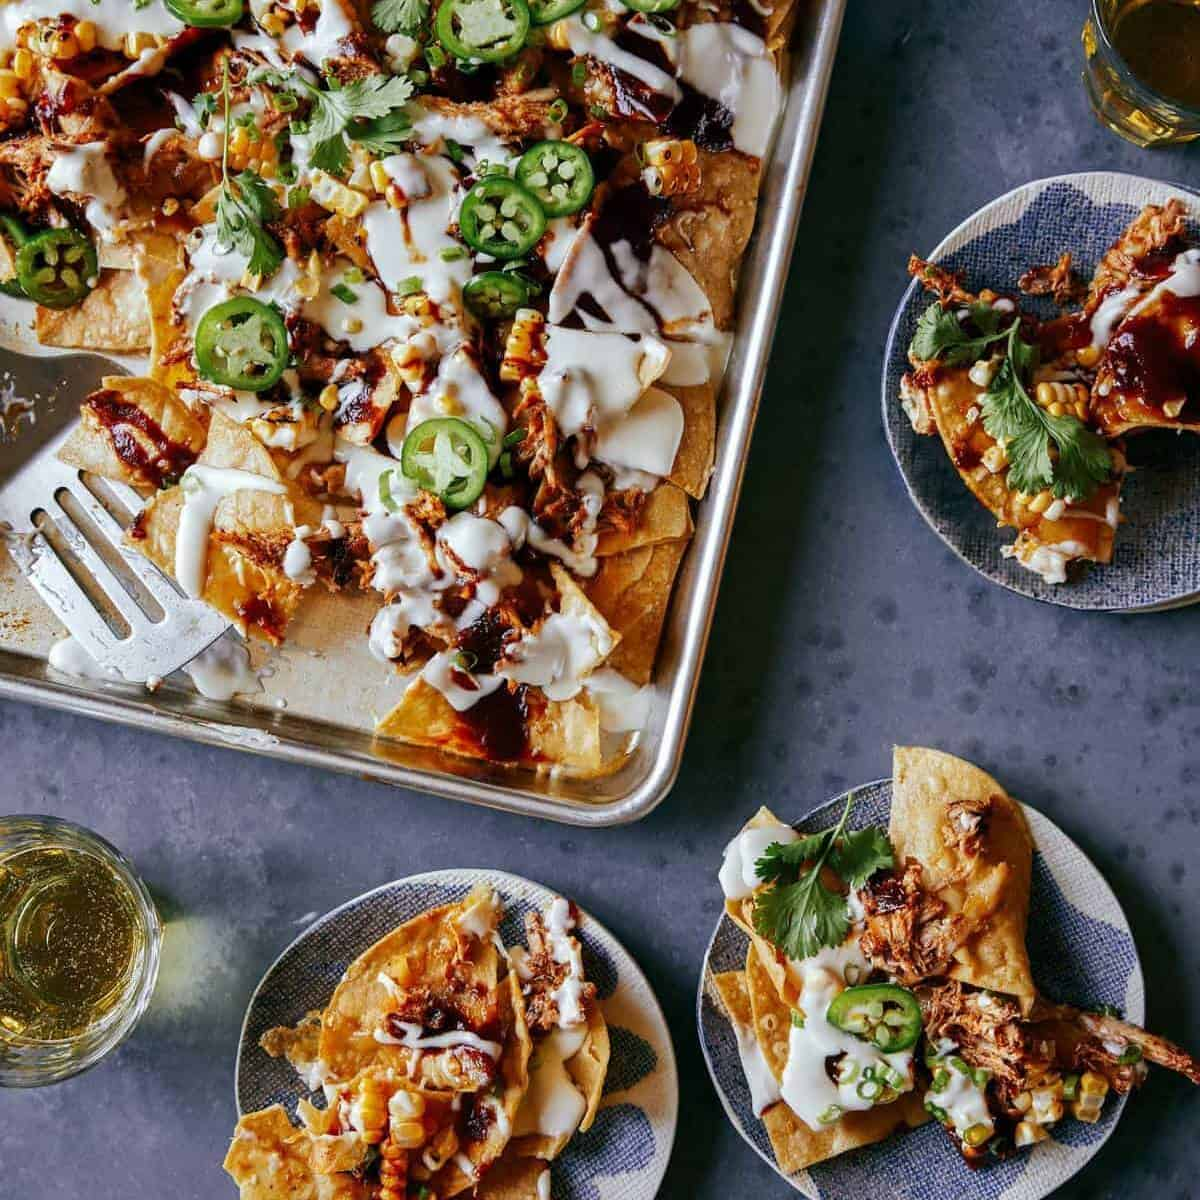 A sheet pan of chipotle chicken nachos with servings on small plates, a new years eve appetizer.